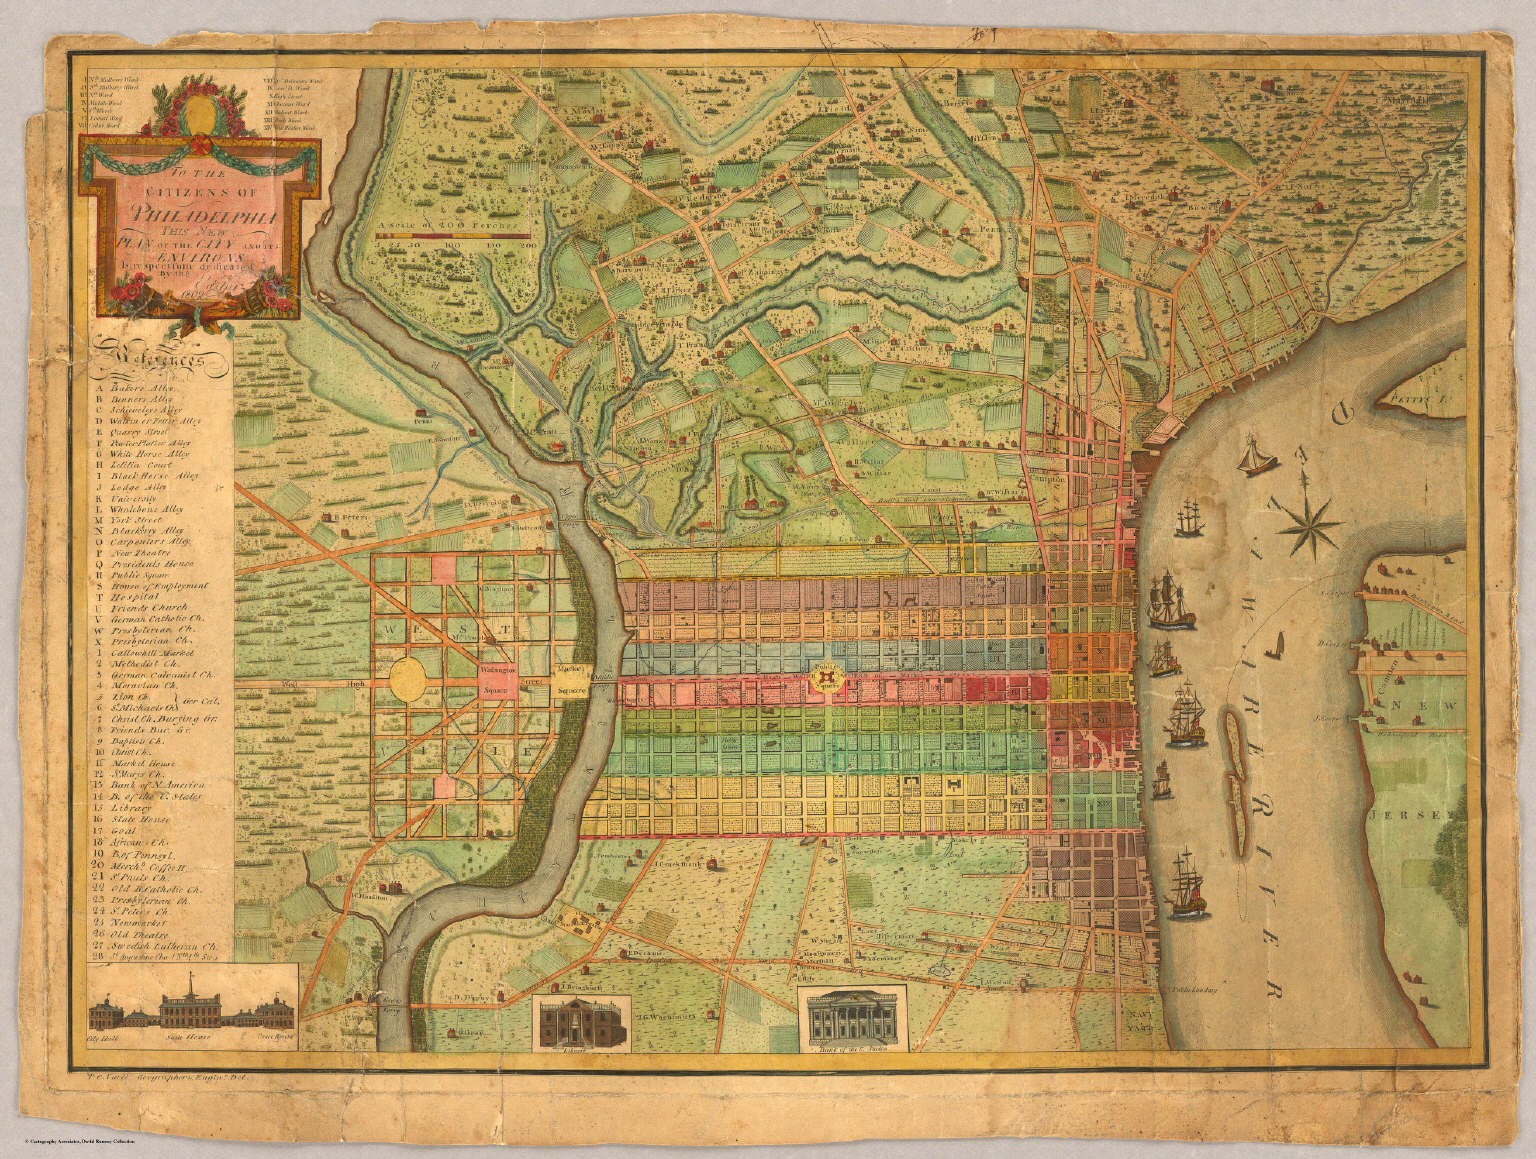 Philadelphia (1802). Map from the David Rumsey Collection